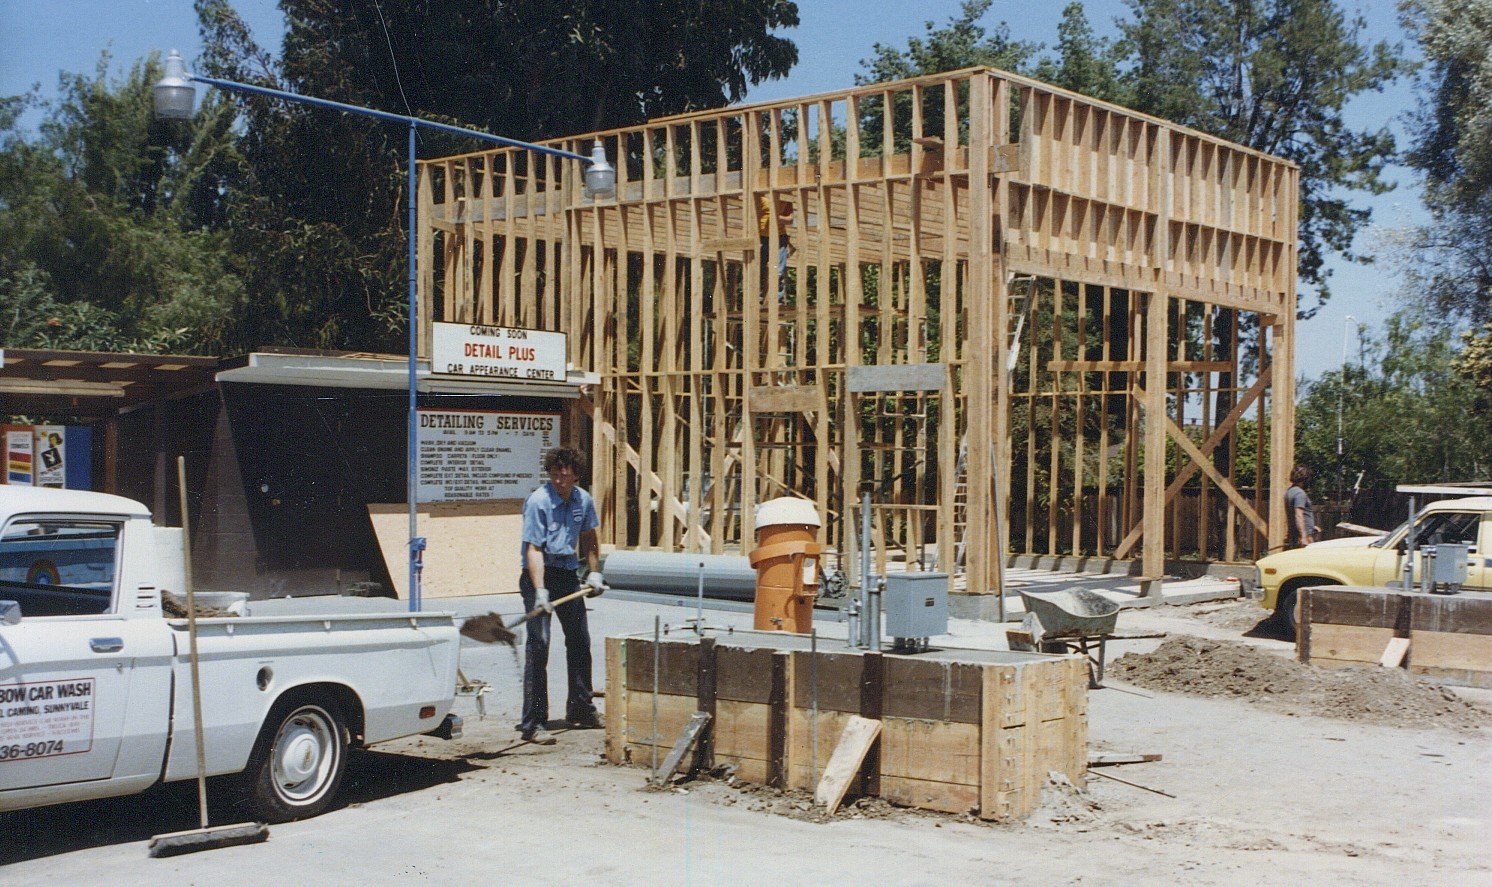 Old photo of building the detail shop at Rainbow Carwash Detail Plus in Sunnyvale, California